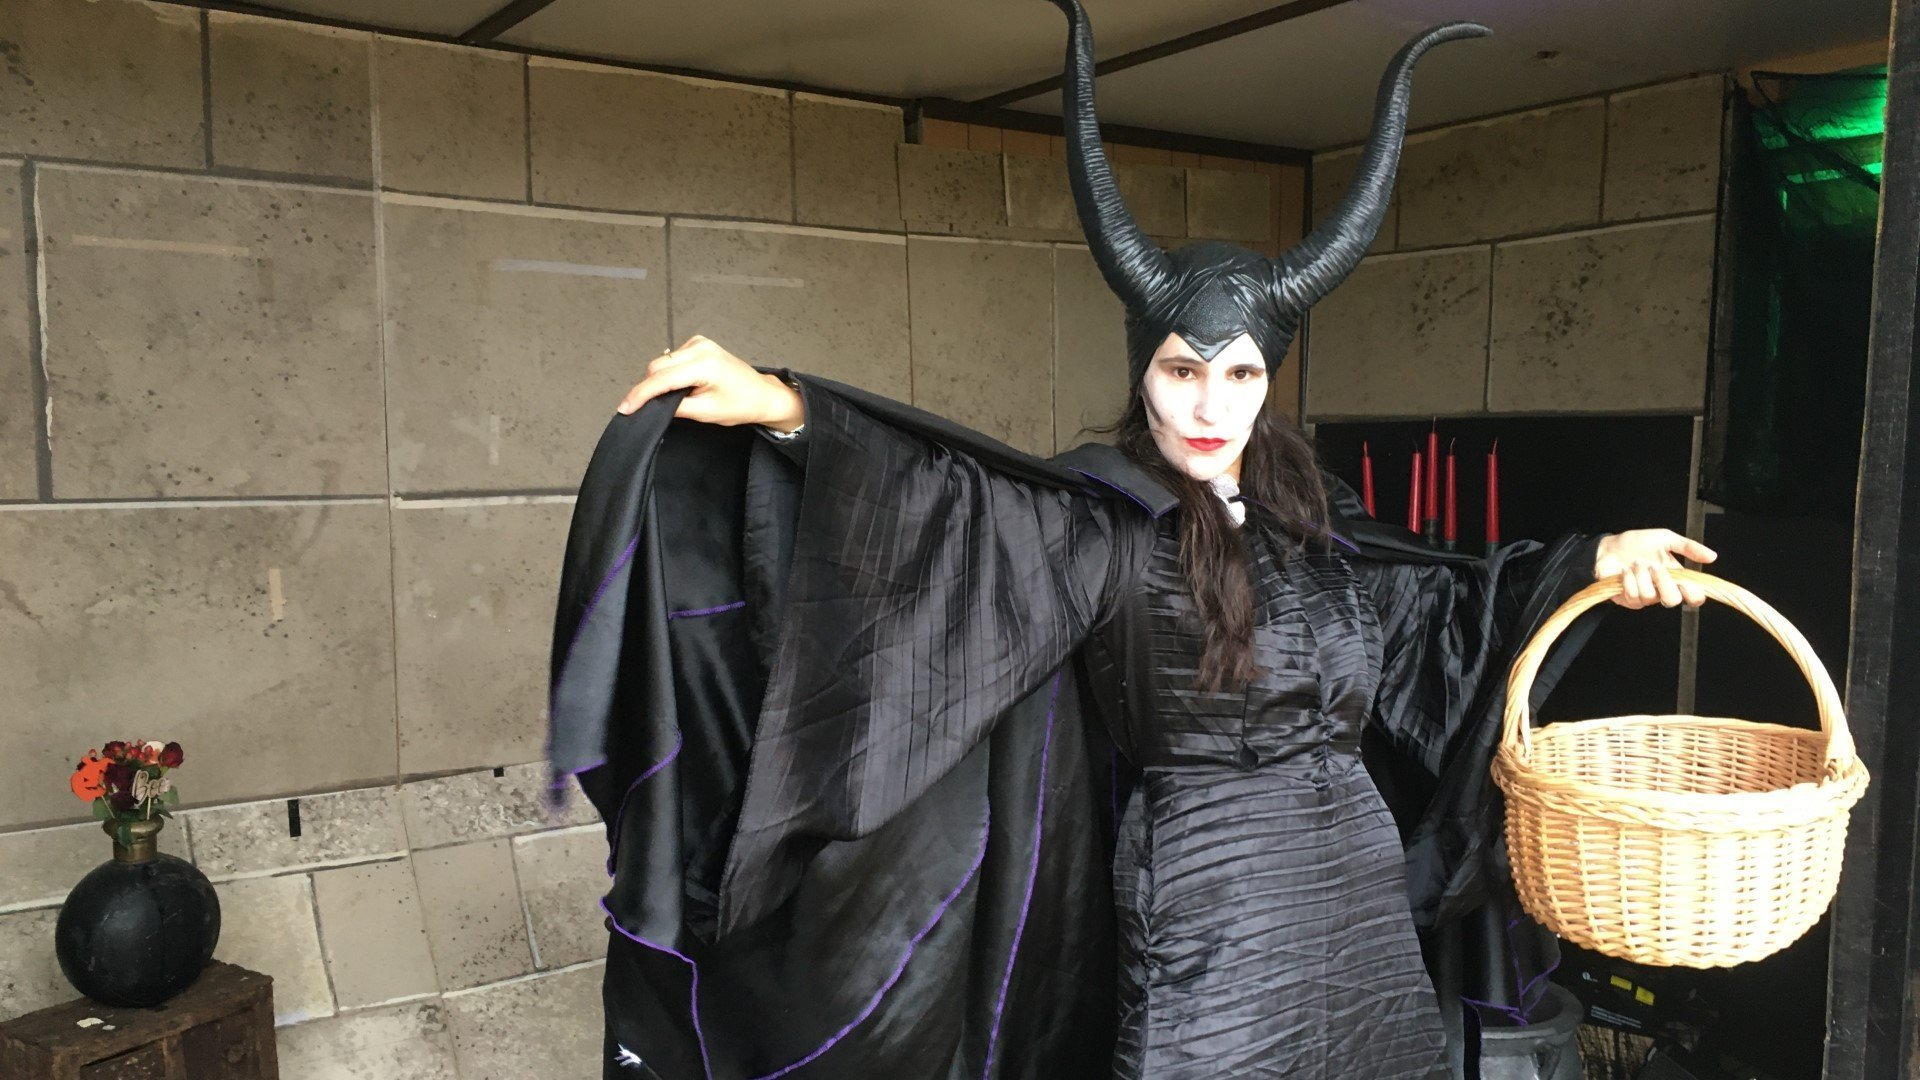 'Scarily Ever After': Halloween event at Fairytale Farm